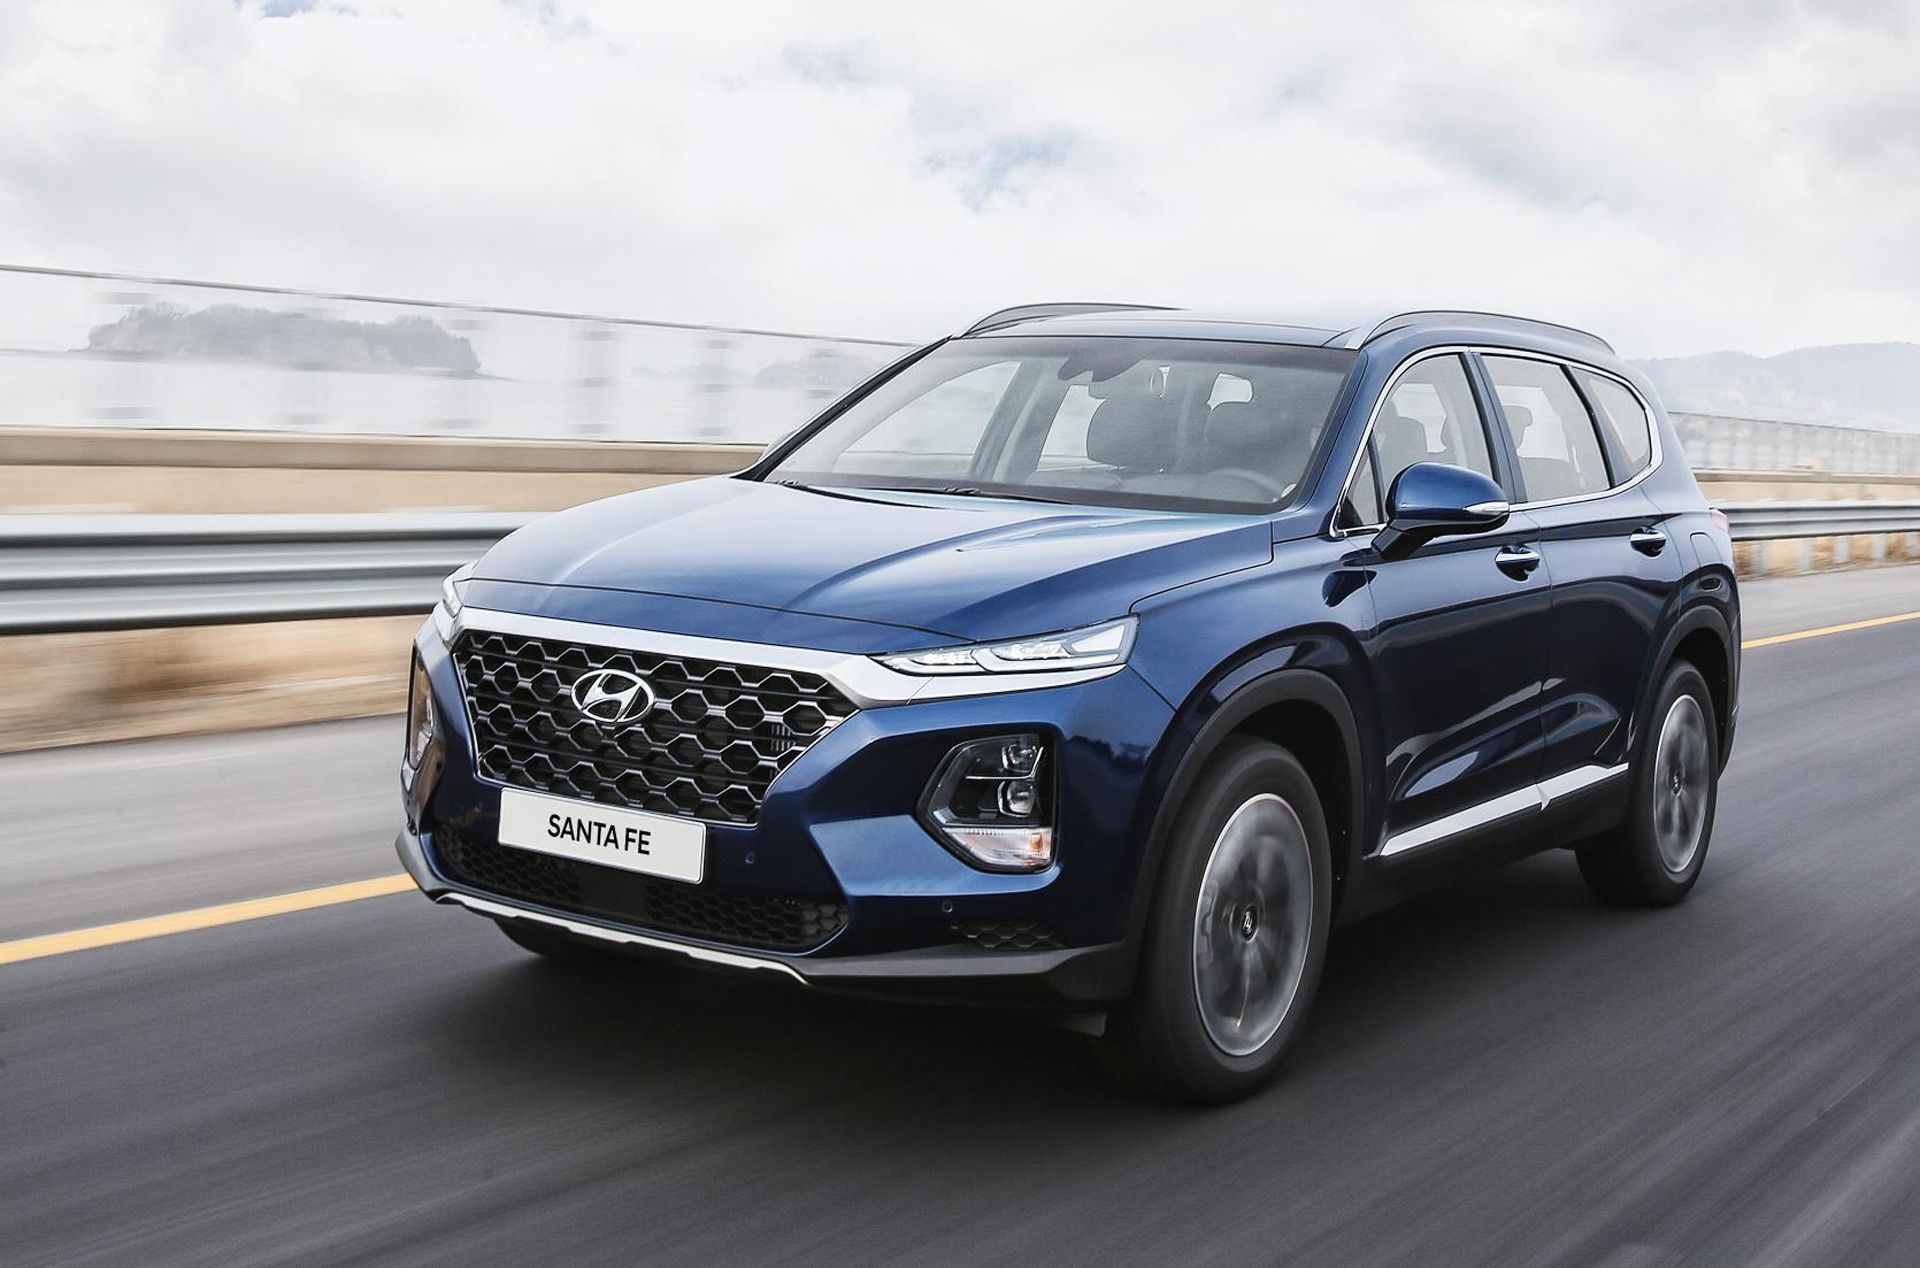 2019 New Cars Coming Out 2019 New Car Models 2019 Cars Worth Waiting For 2019 2020 Official Site For New Car Relea Hyundai Santa Fe Luxury Suv Hyundai